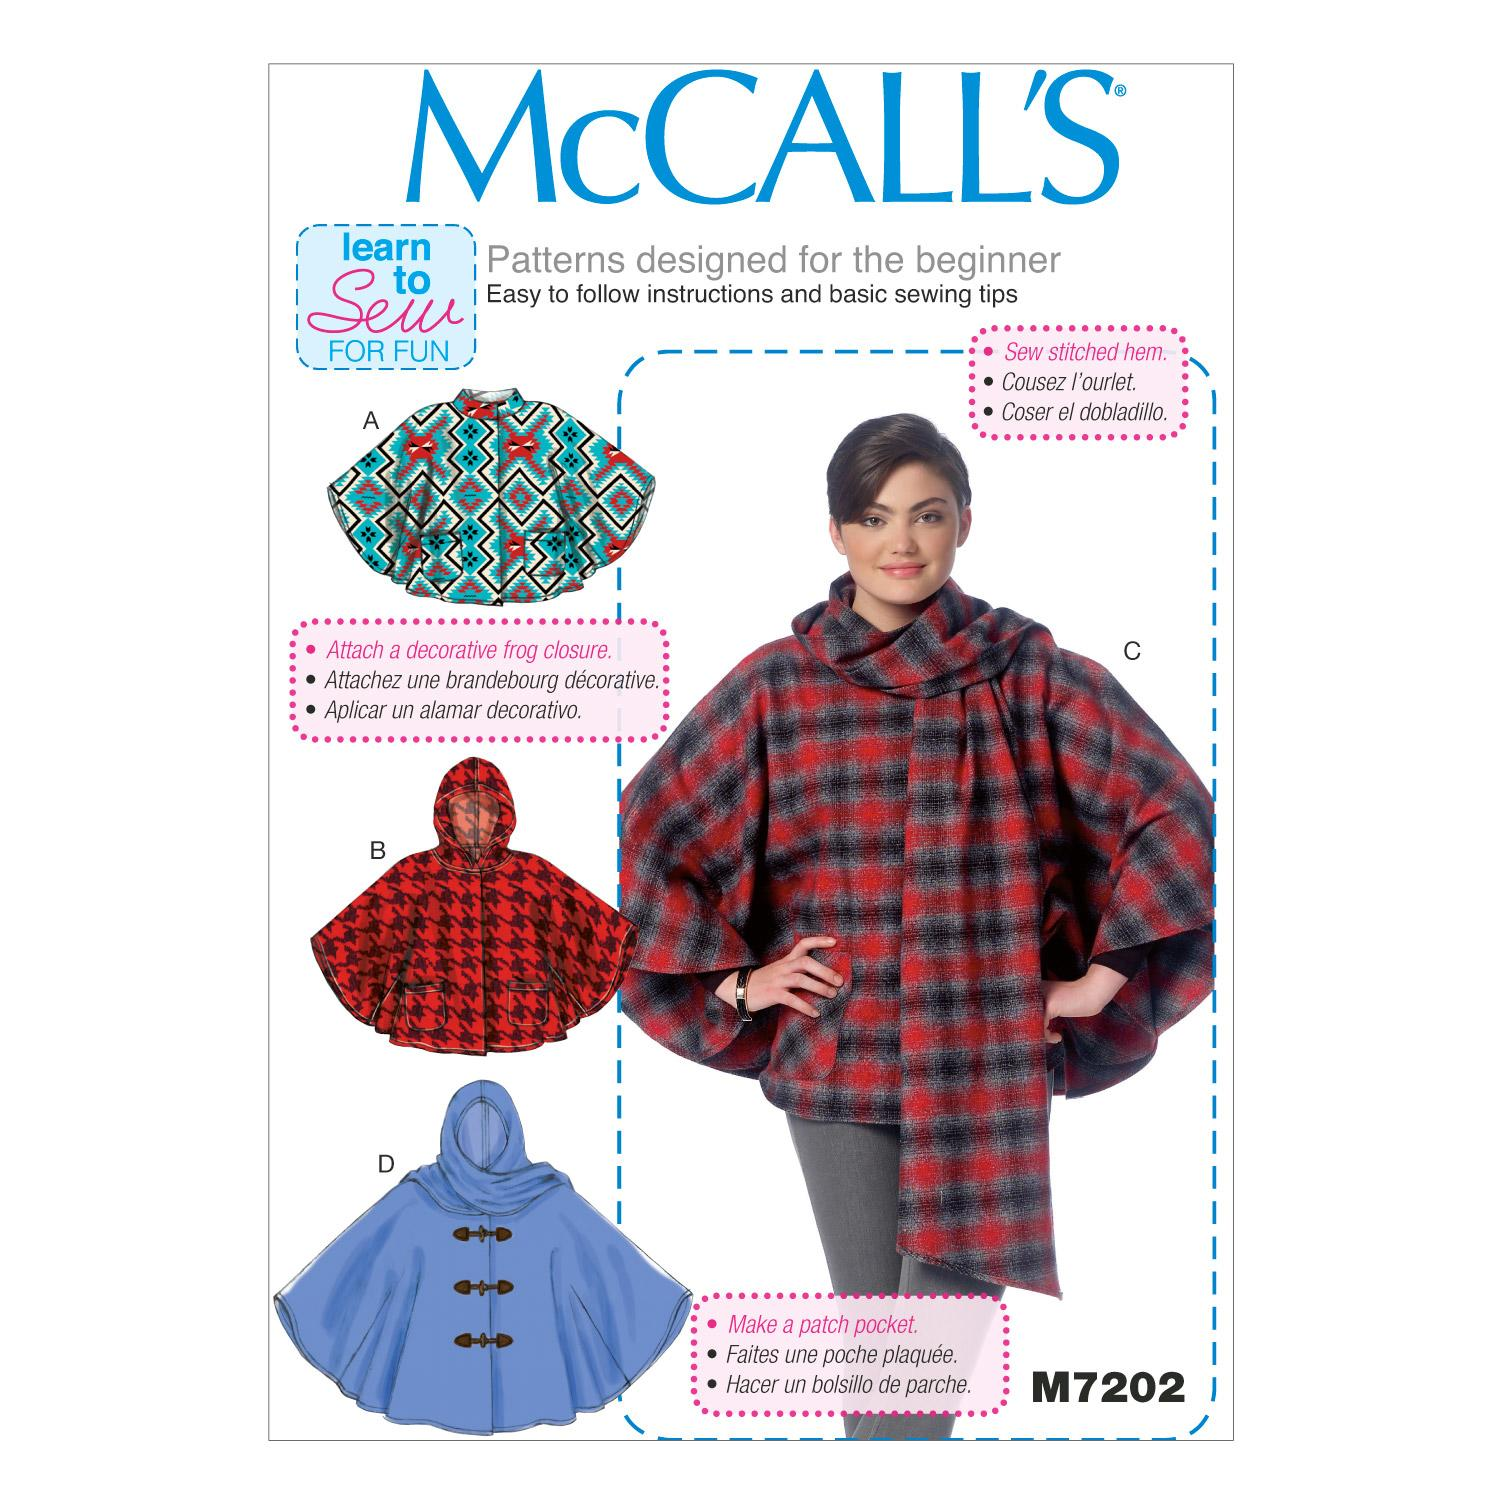 McCalls M7202 Coats/Capes/ Ponchos, Learn To Sew for Fun